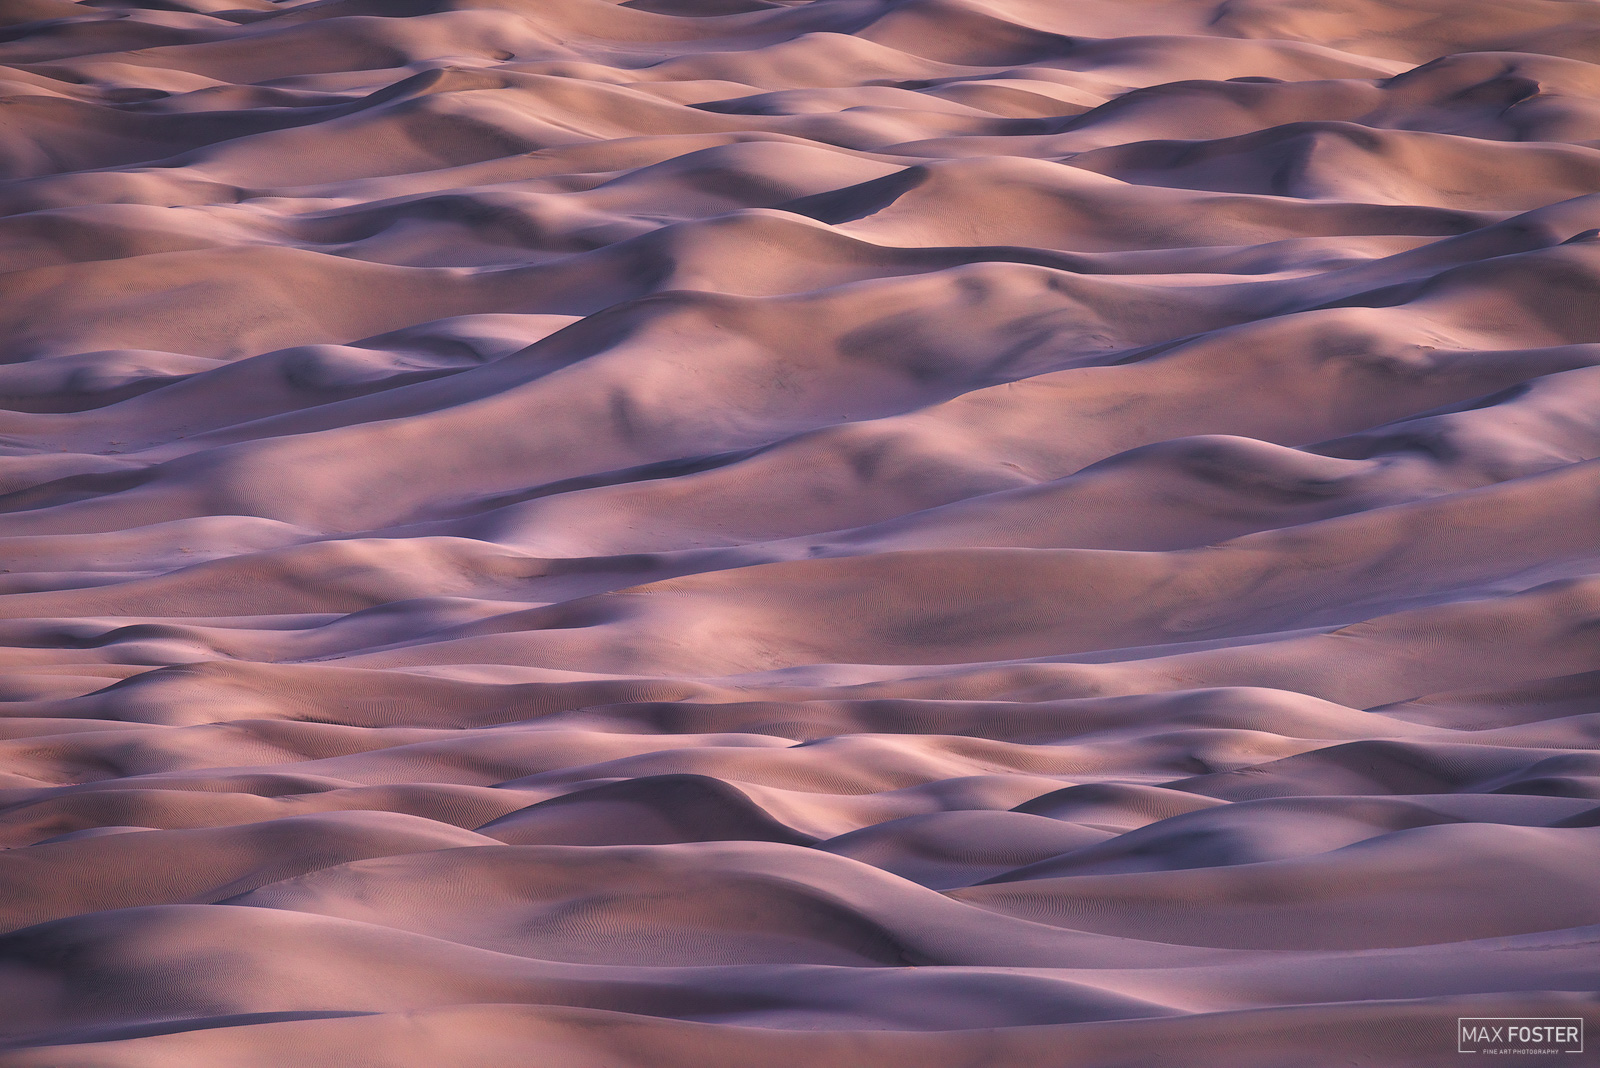 Mesquite Flat Sand Dunes, Death Valley National Park, California, Ripple Effect, photo